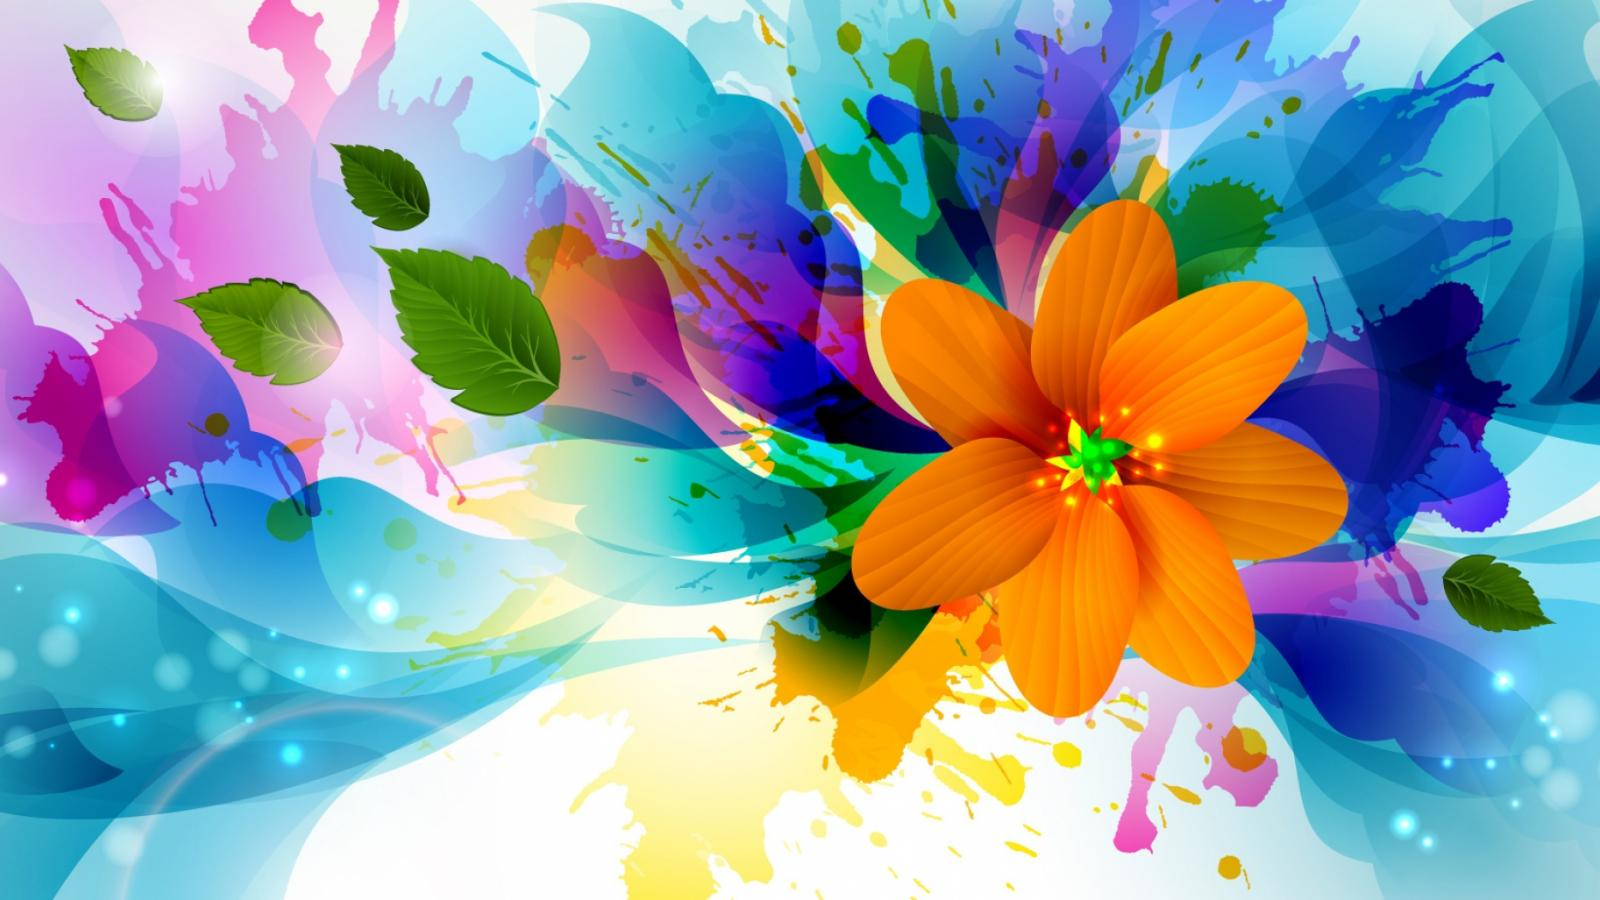 Free Colorful Flower Wallpaper Downloads: Abstract 3D Painting Wallpaper With Colorful Flower